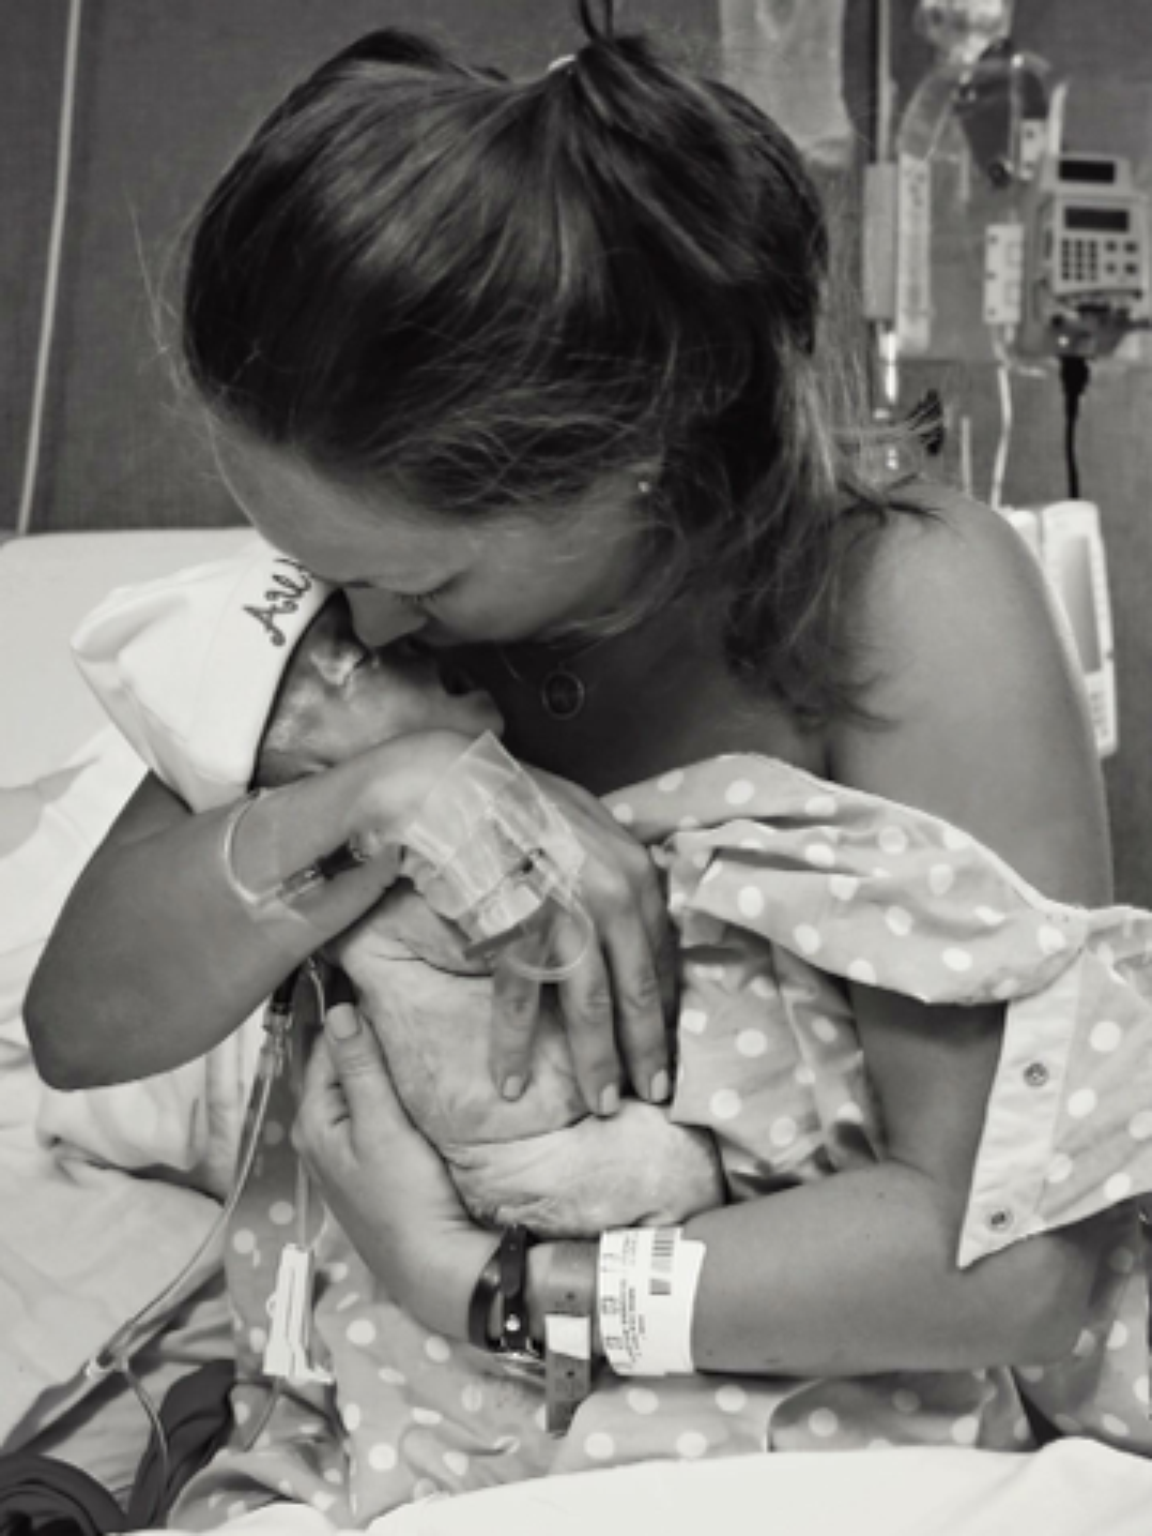 OB/GYN Embraces Pregnancy After Learning She Will Lose Her Baby